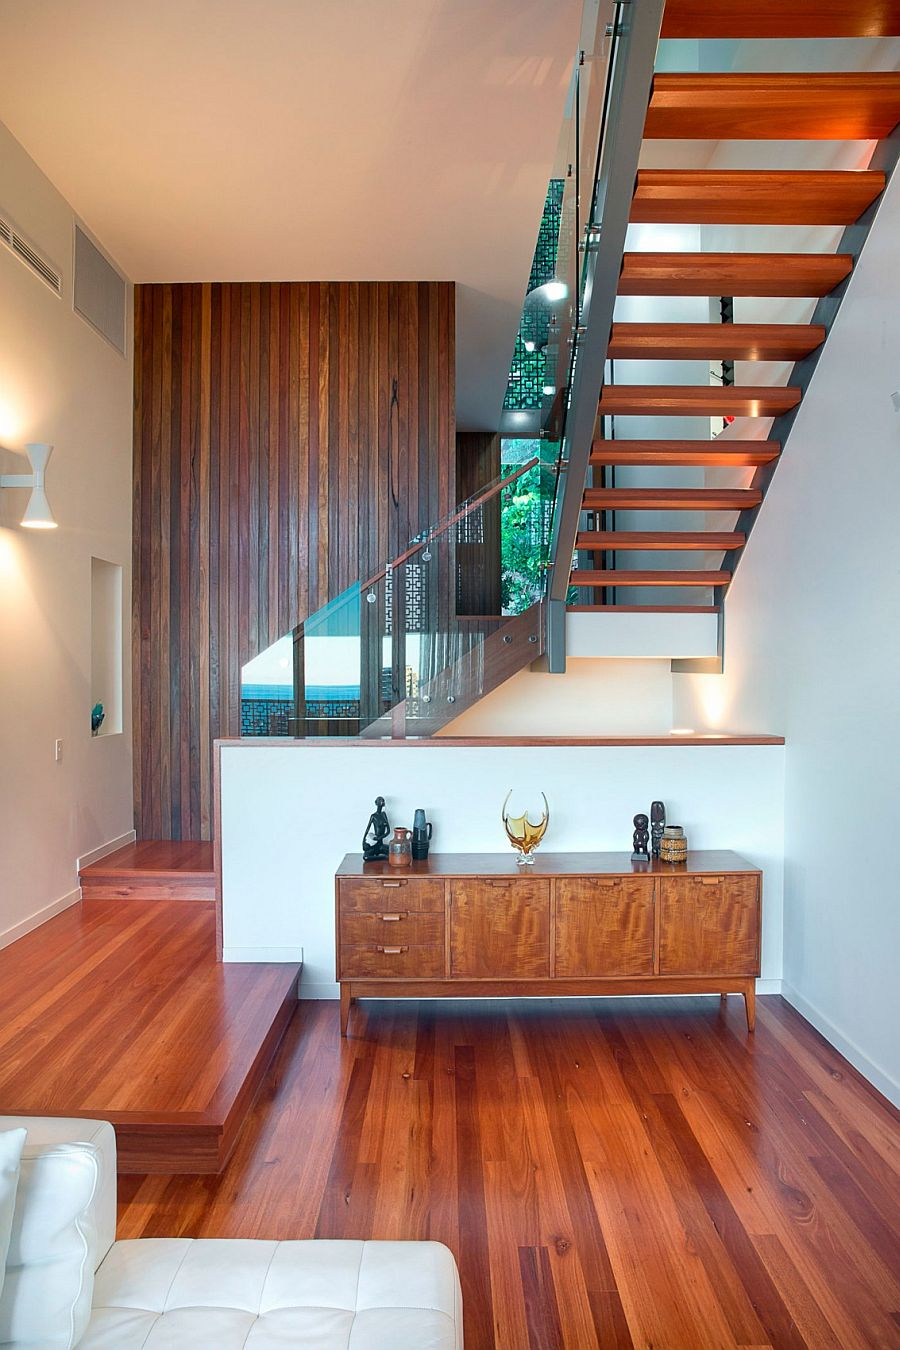 Creative design of the staircase saves up ample space